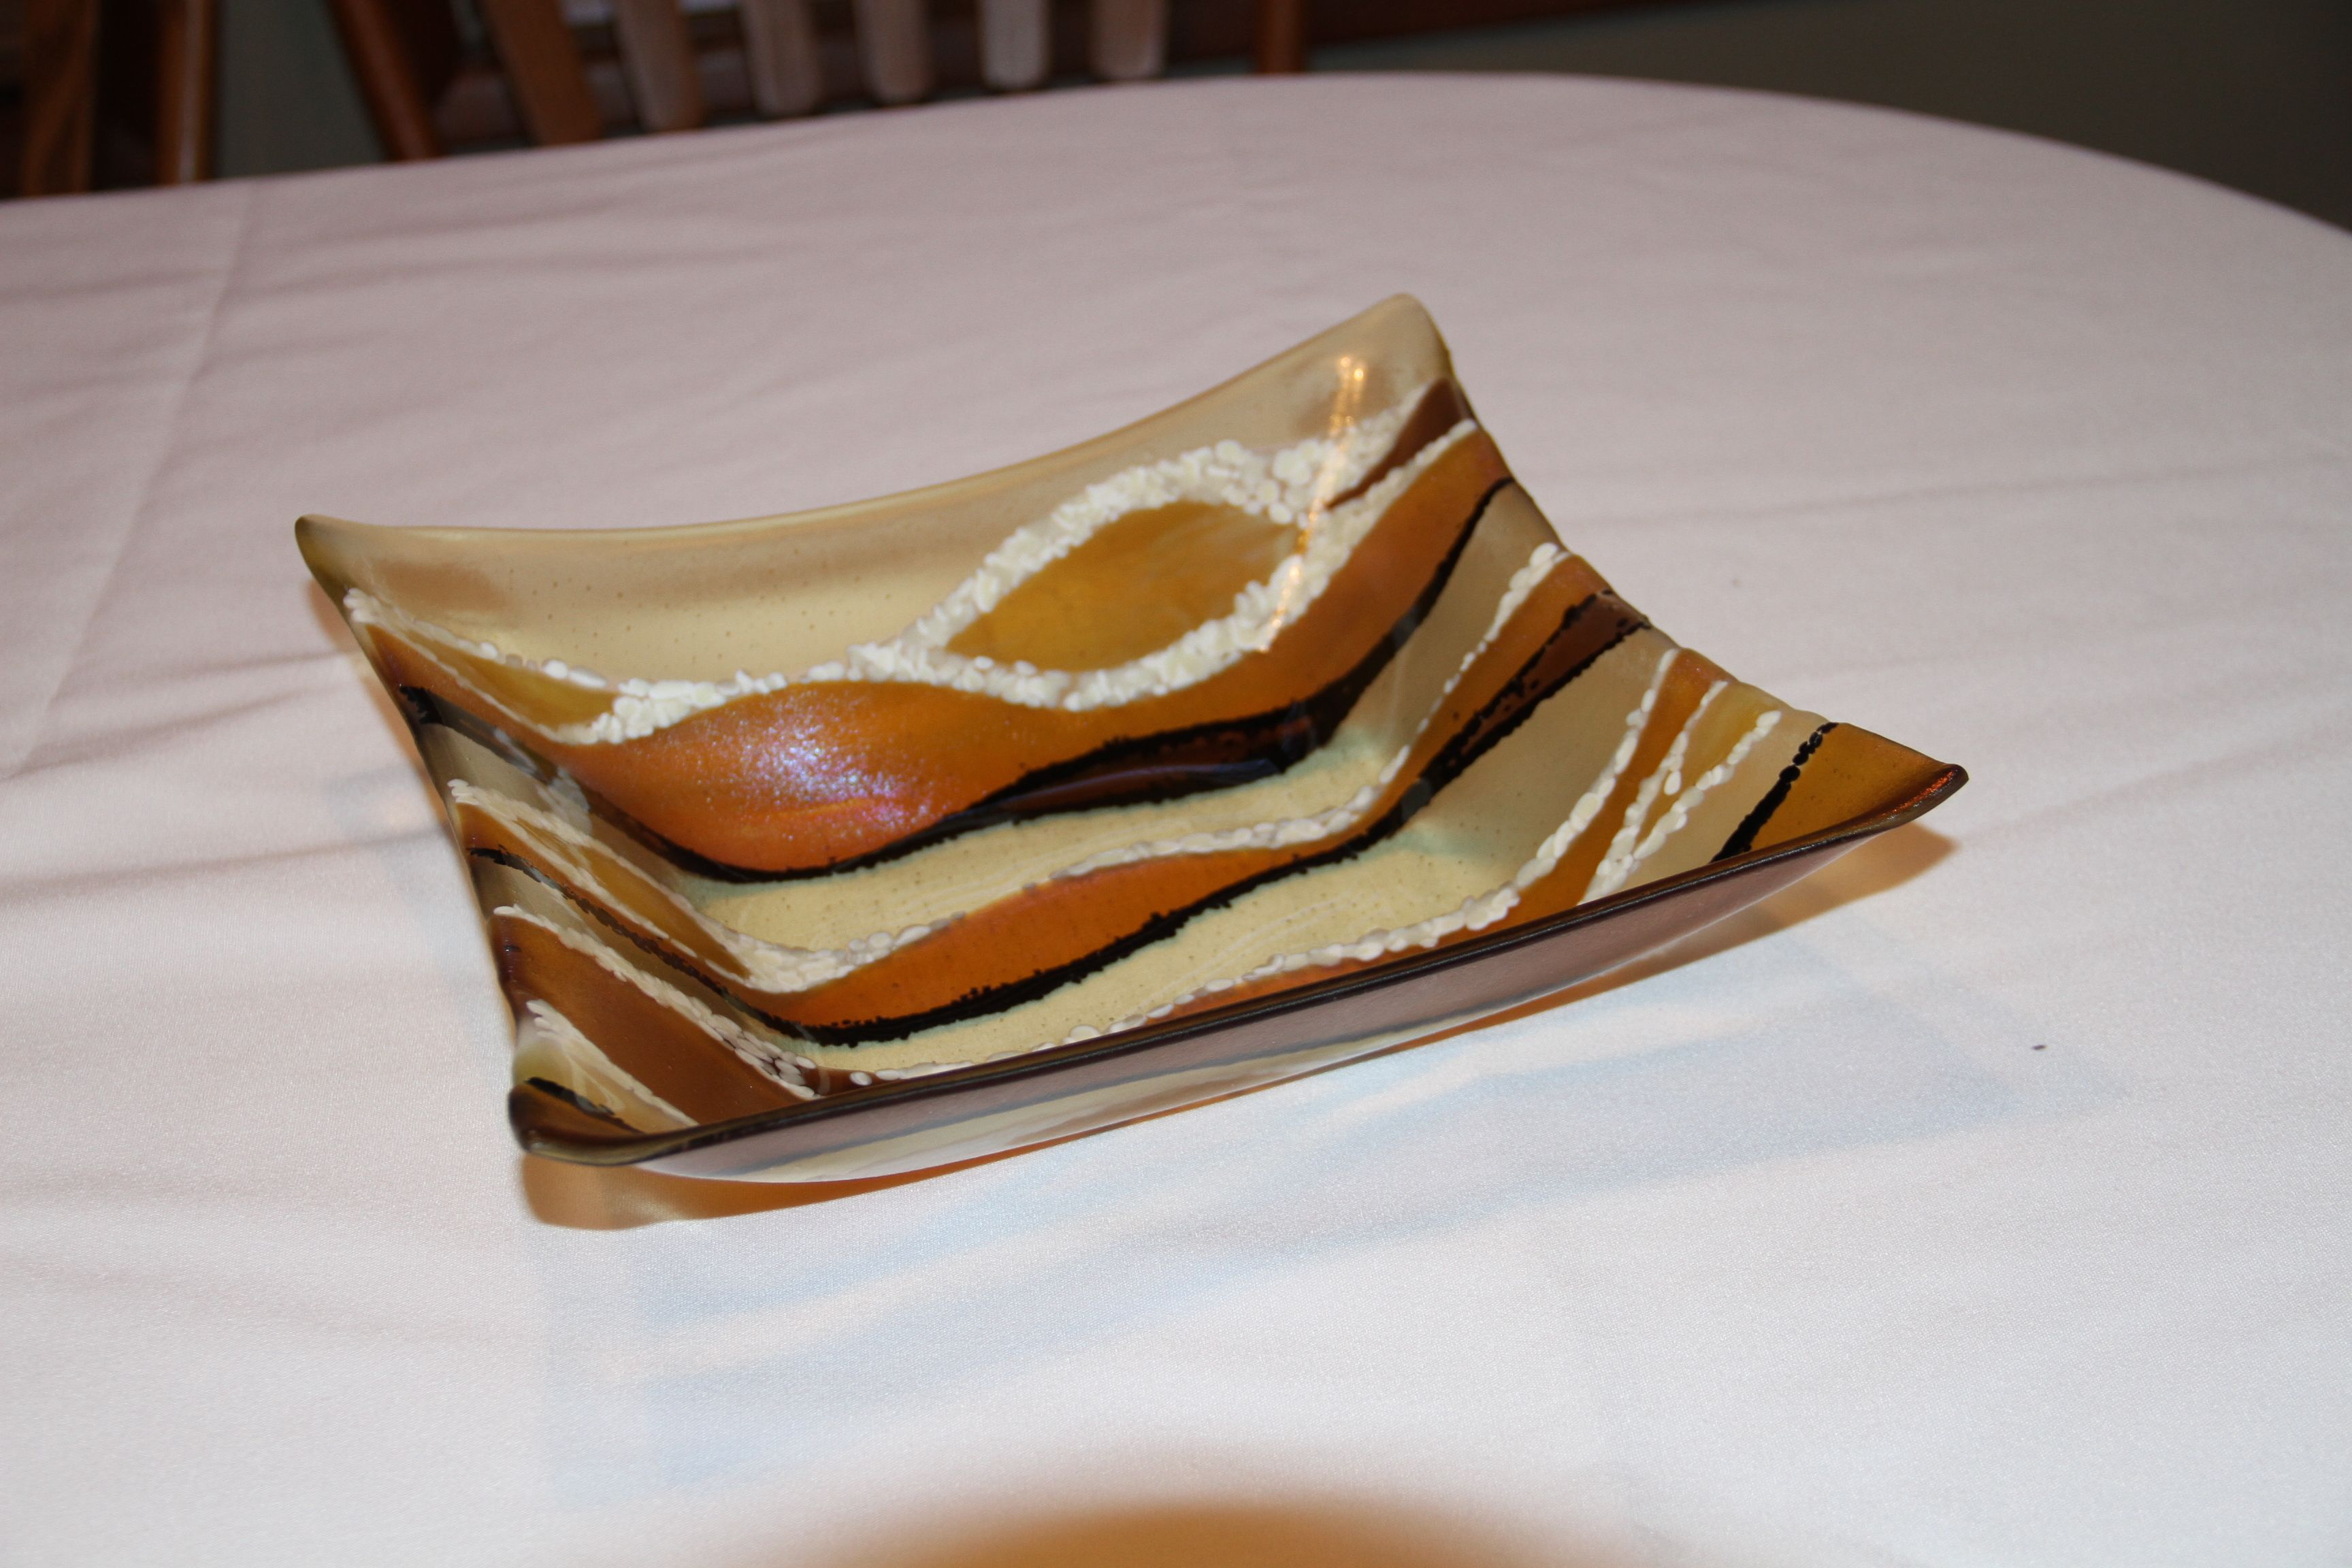 12 X 12 bowl, 4 inches deep